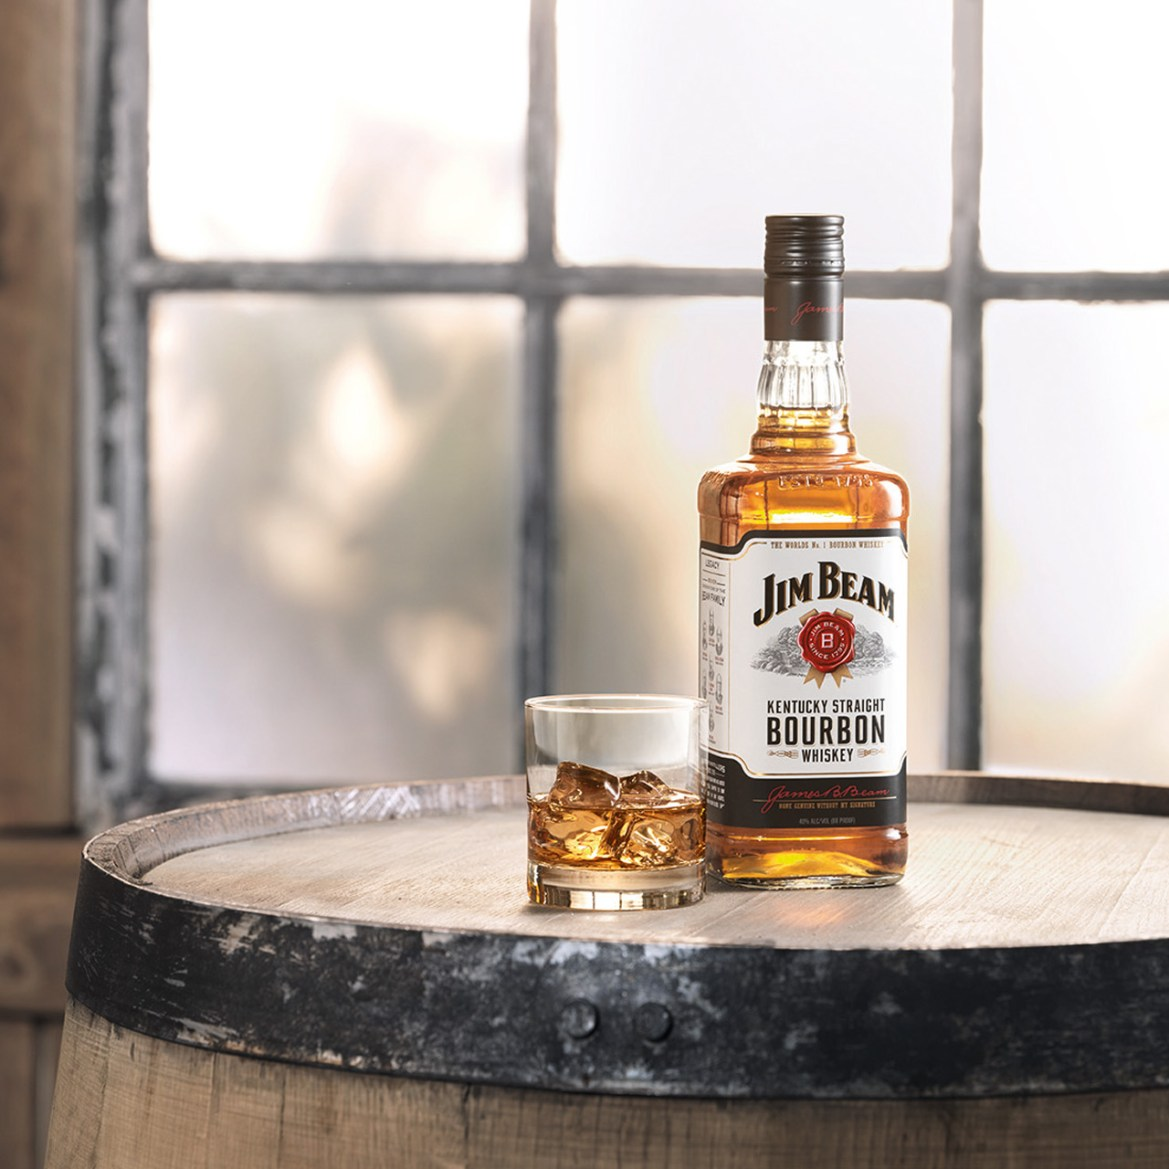 Jim Beam bottle and glass